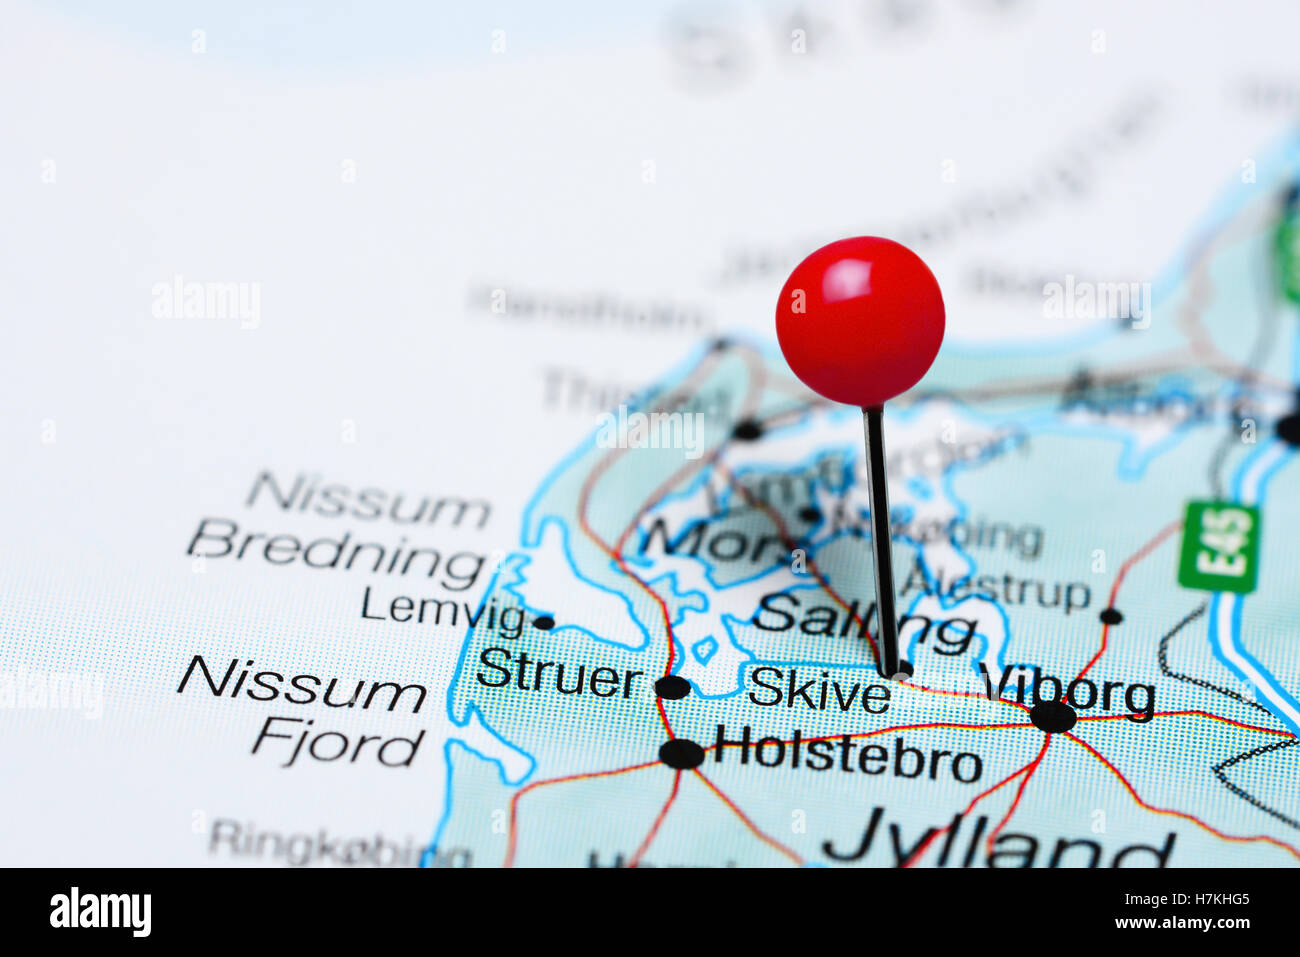 Skive pinned on a map of Denmark Stock Photo Royalty Free Image